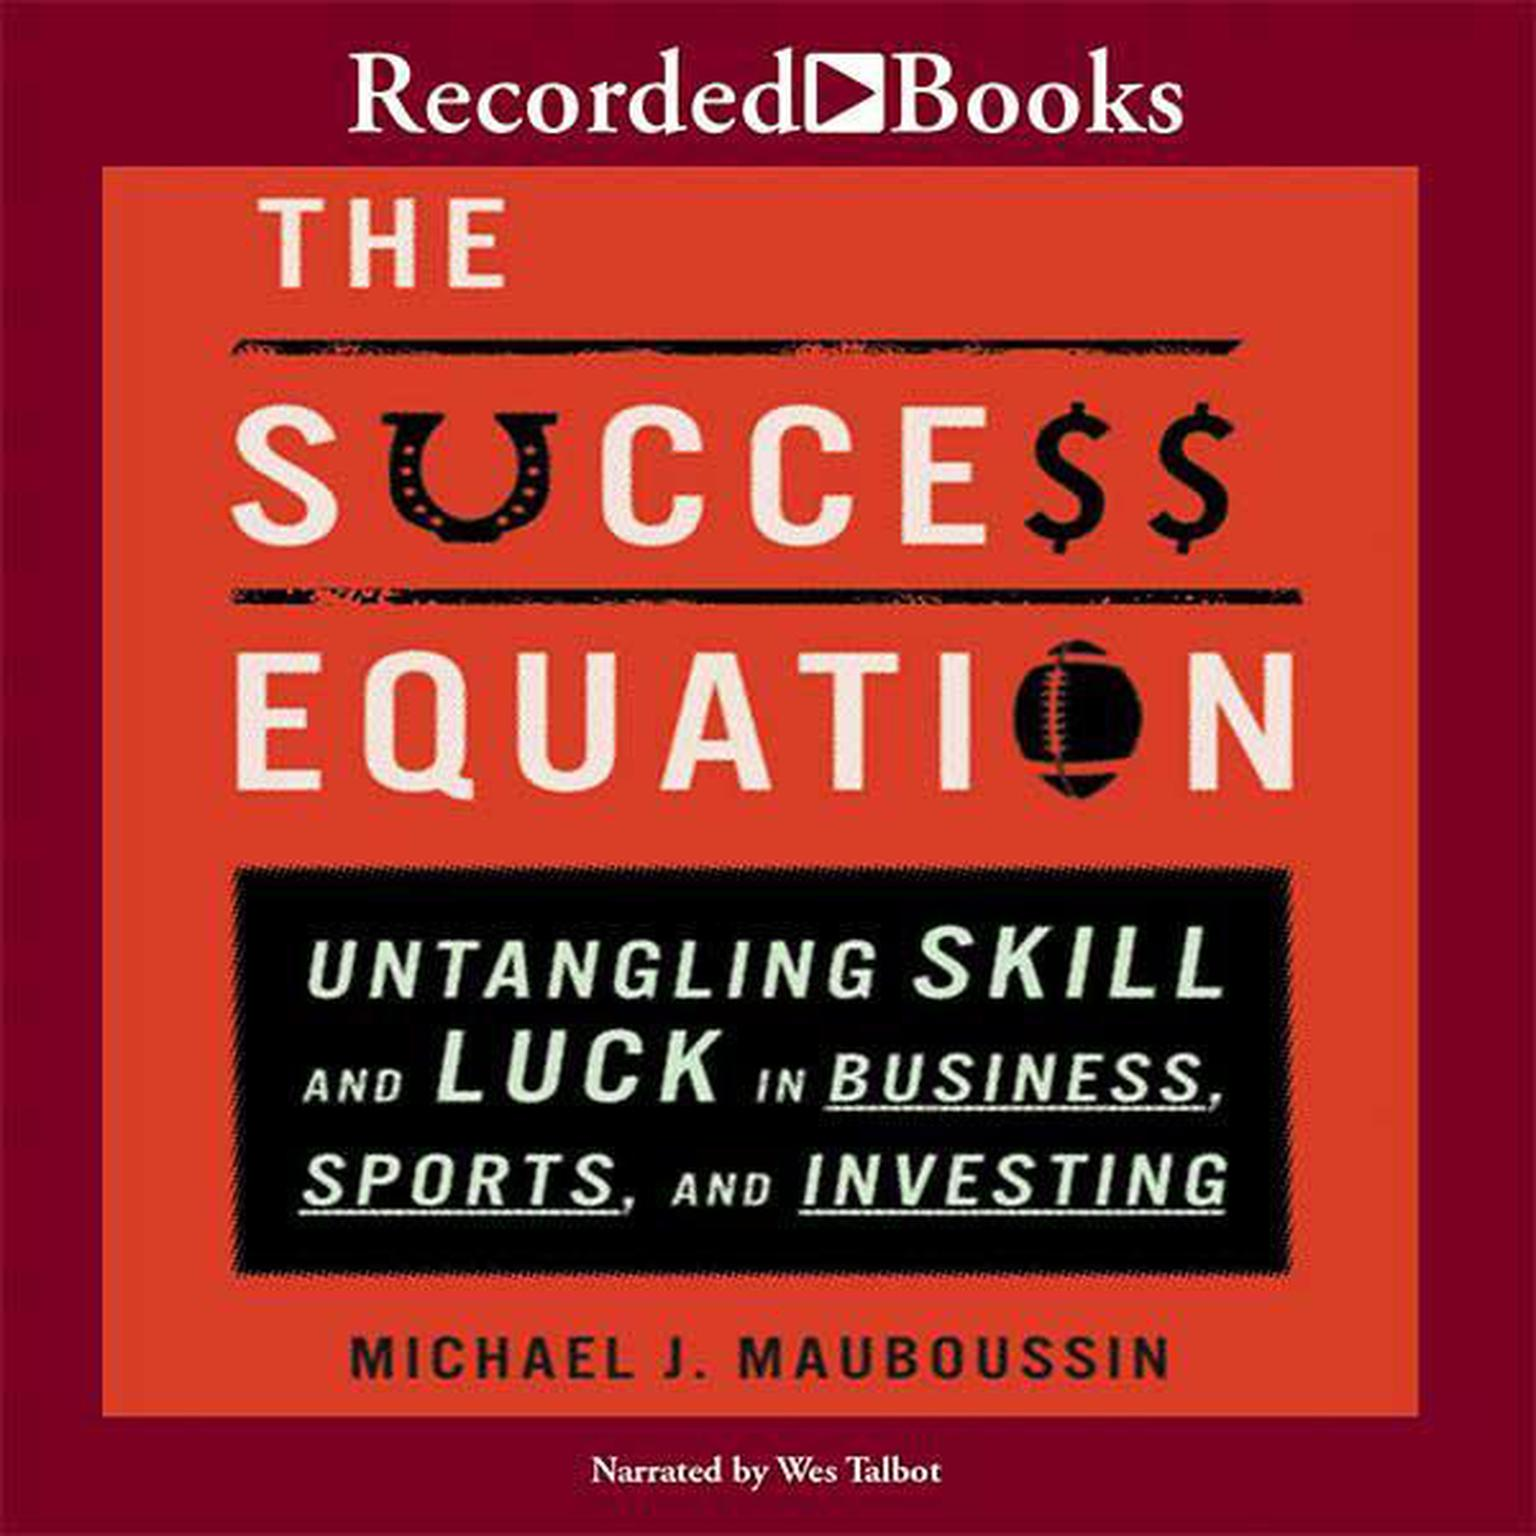 Printable The Success Equation: Untangling Skill and Luck in Business, Sports, and Investing Audiobook Cover Art